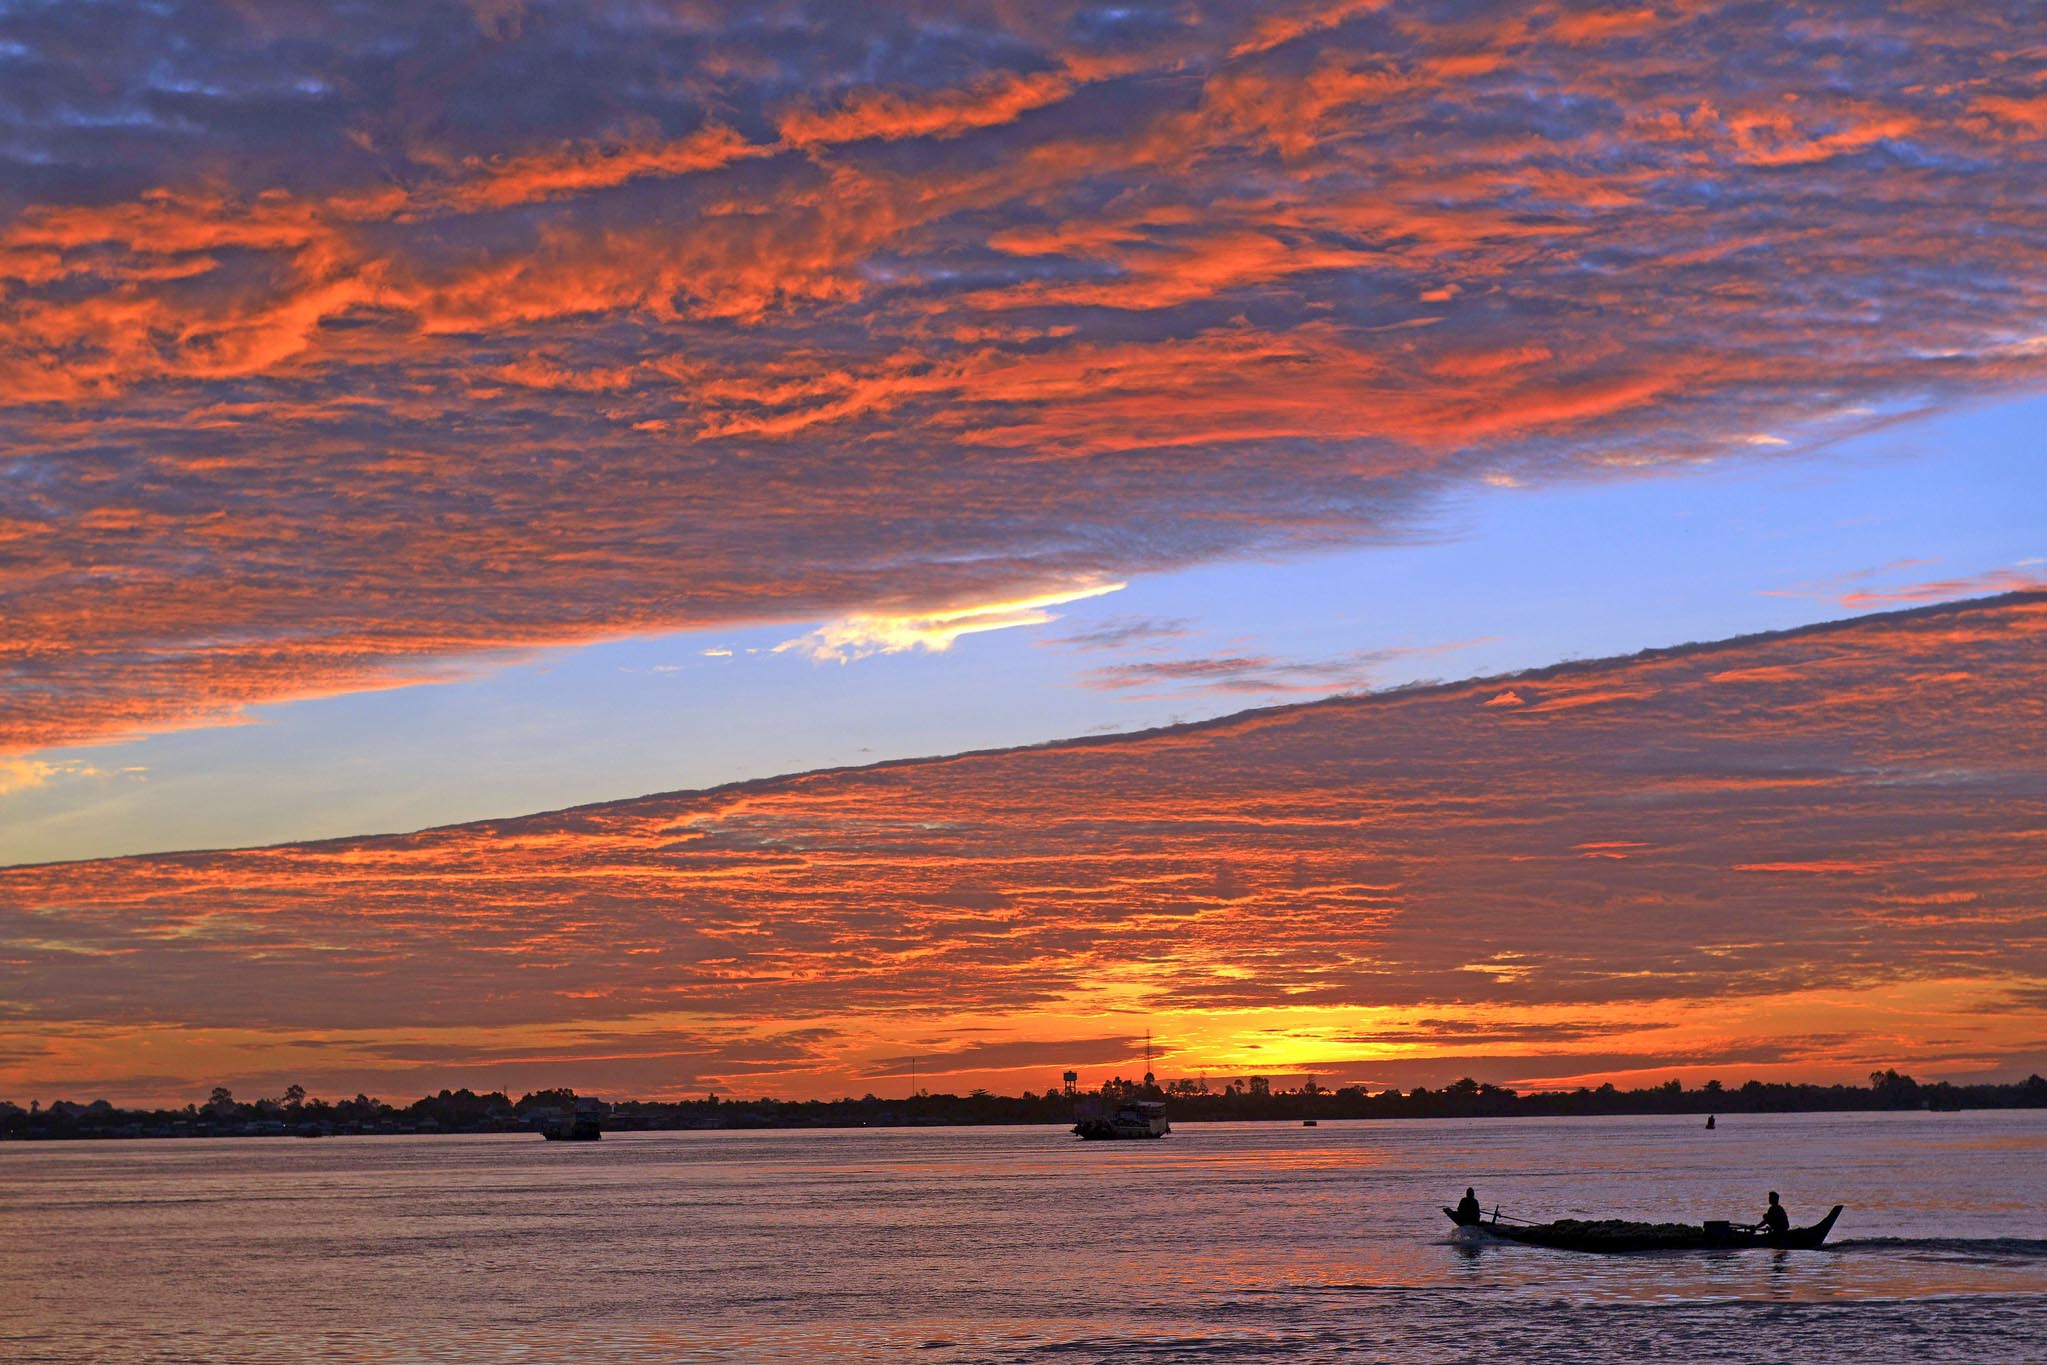 A boat commutes across the Mekong river